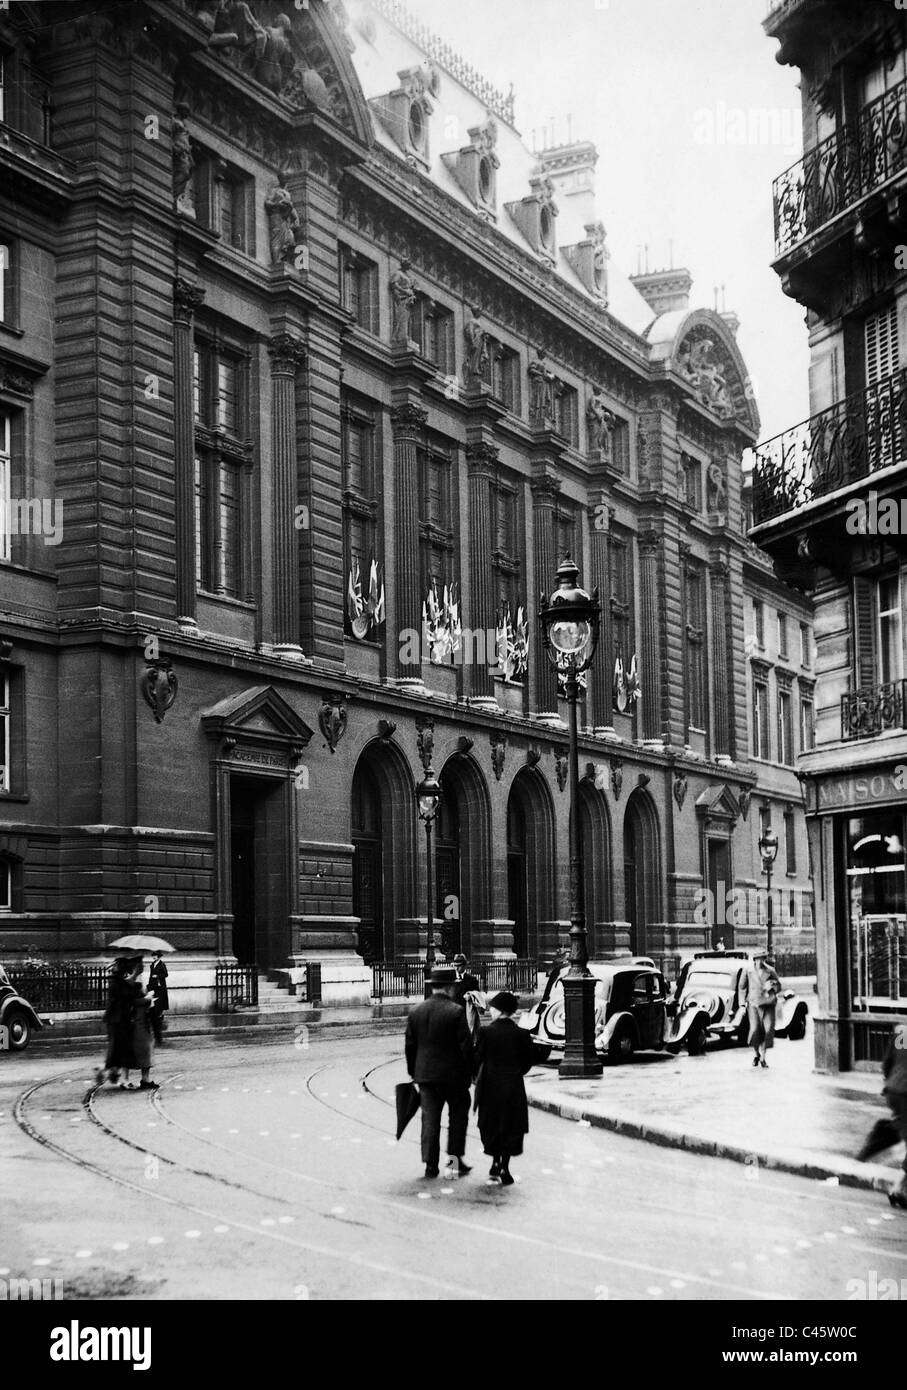 The University of Sorbonne in Paris, 1938 - Stock Image